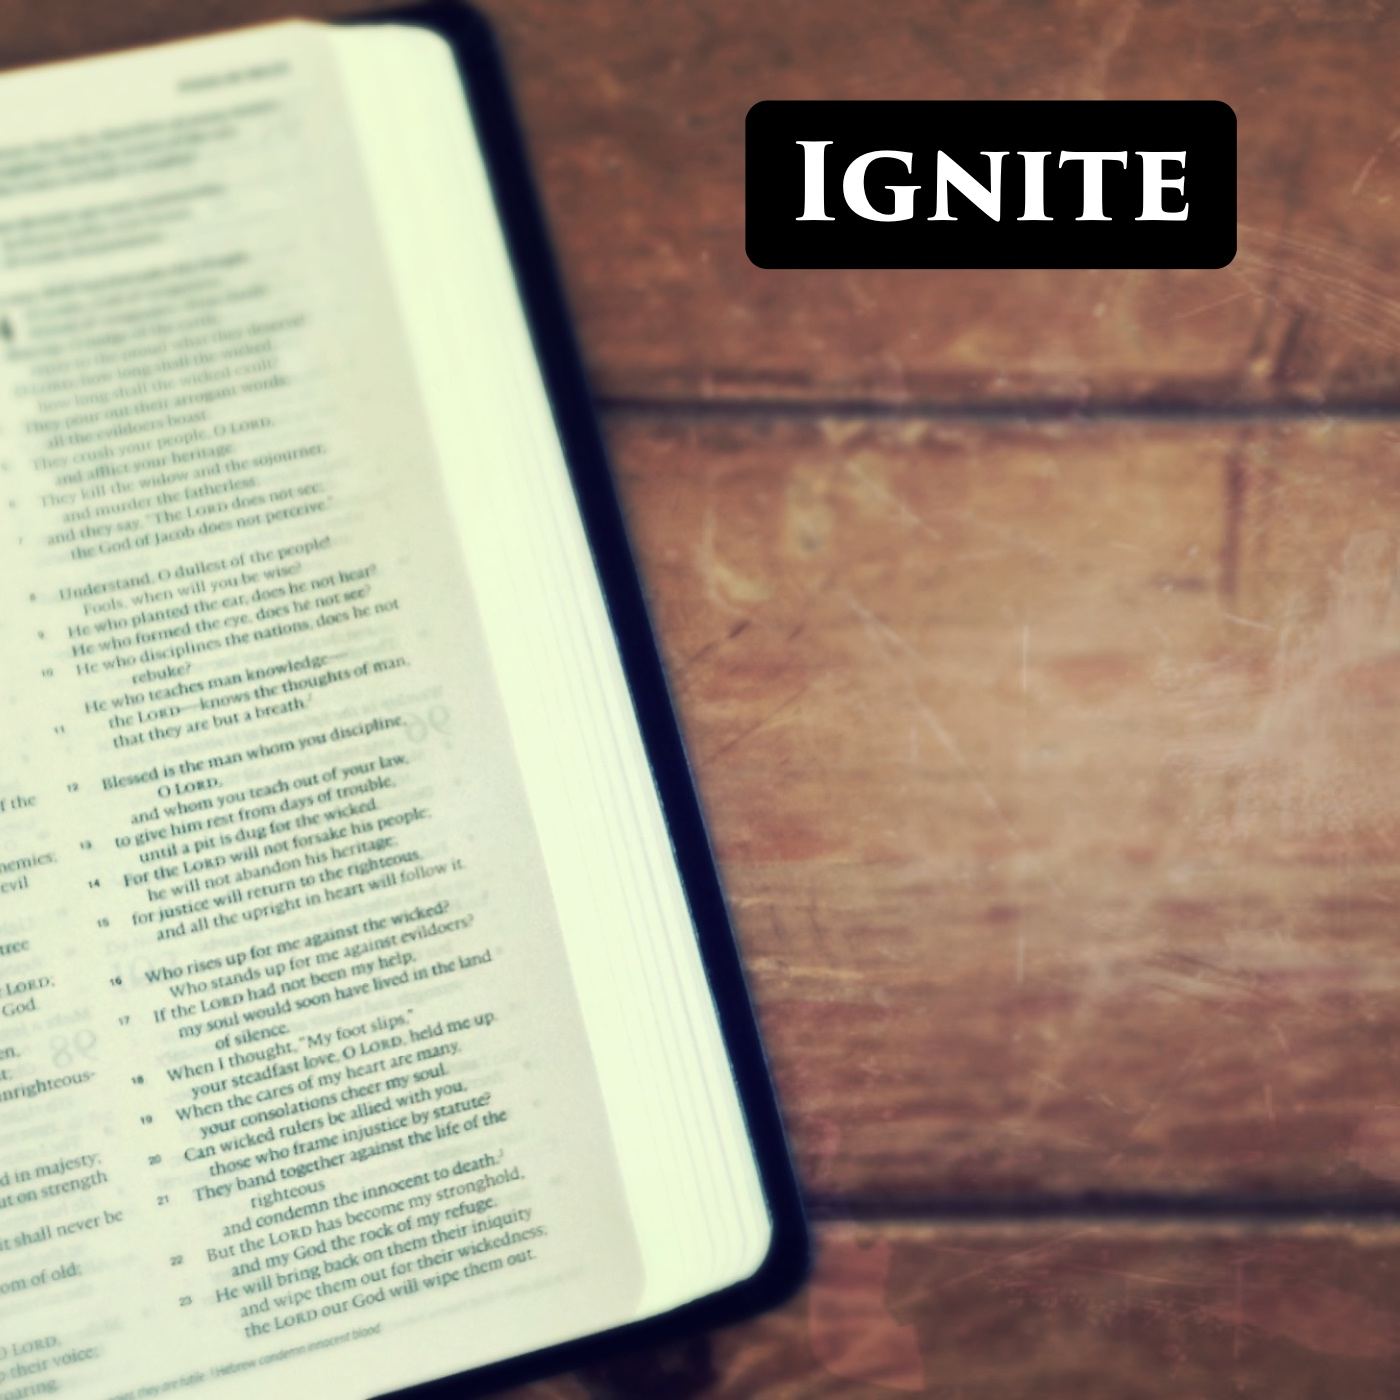 Ignite – Knowledge